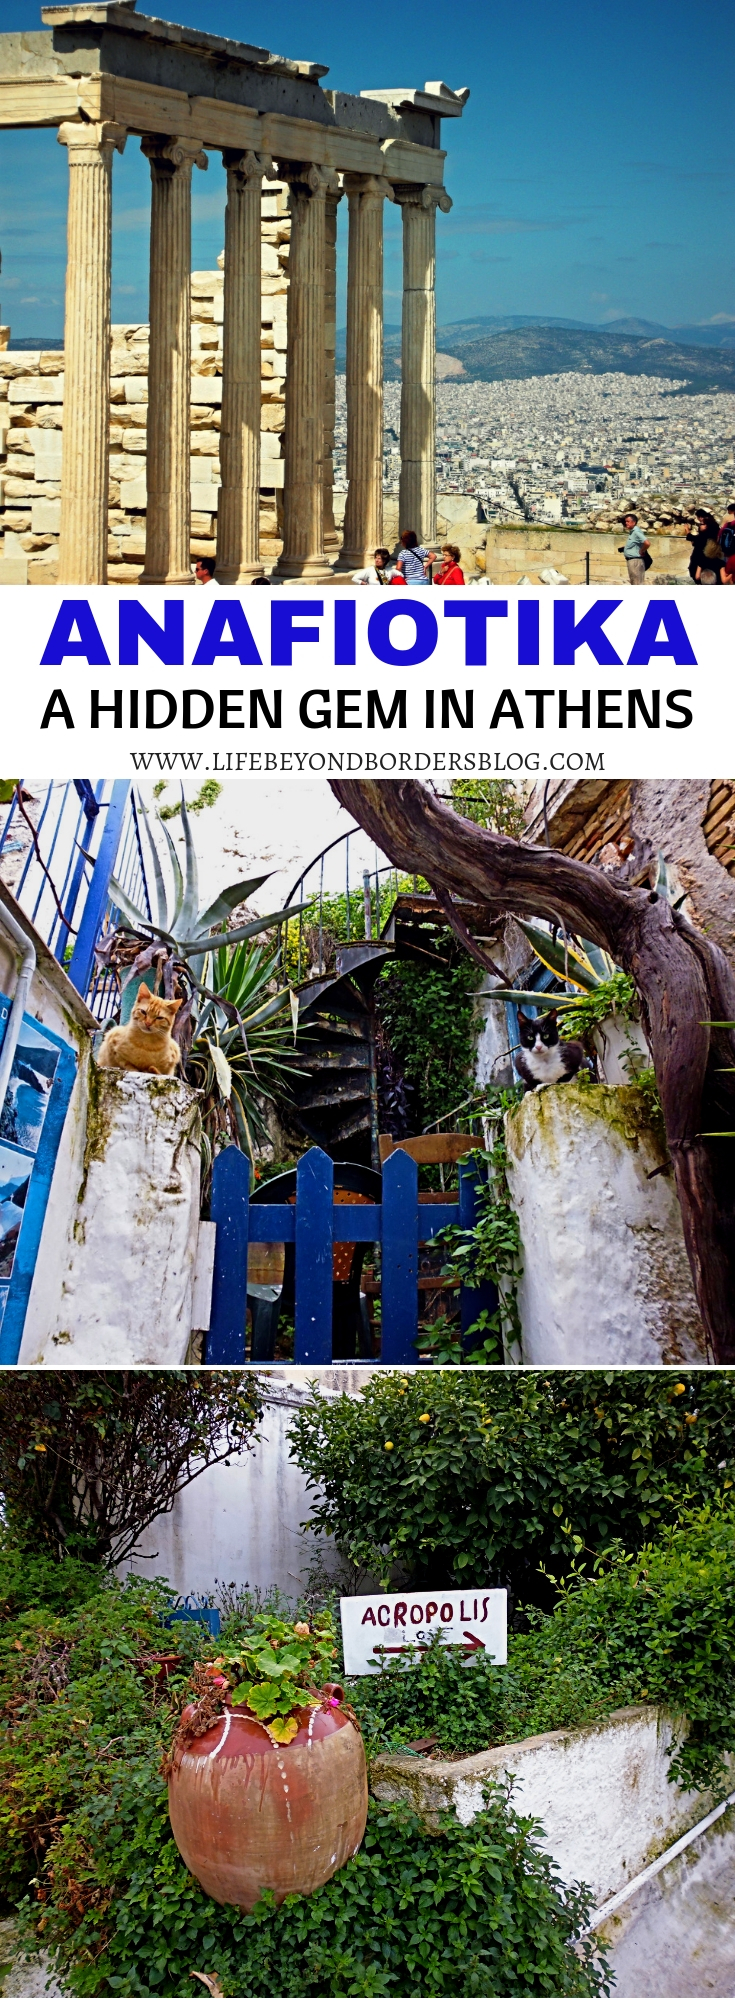 Finding Anafiotika - A Hidden Gem in Athens Greece